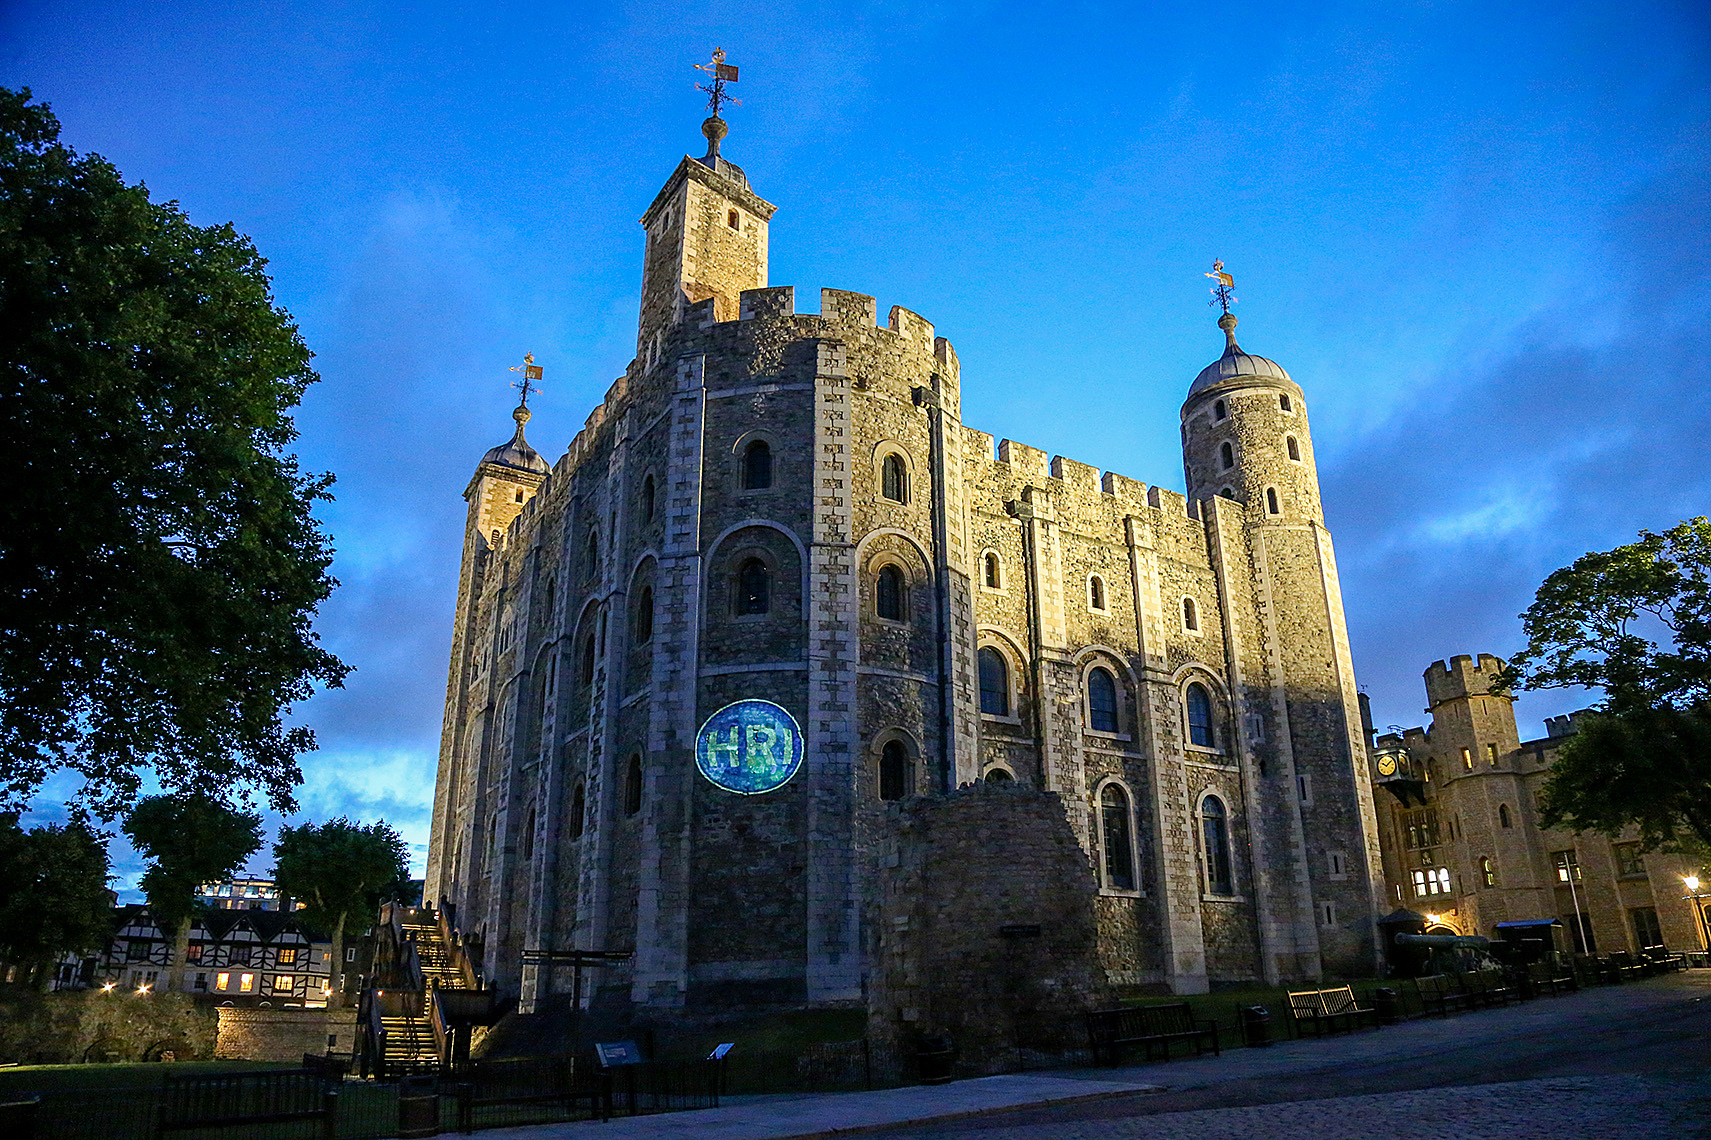 Venue for the HRI Gala Ball, Tower of London